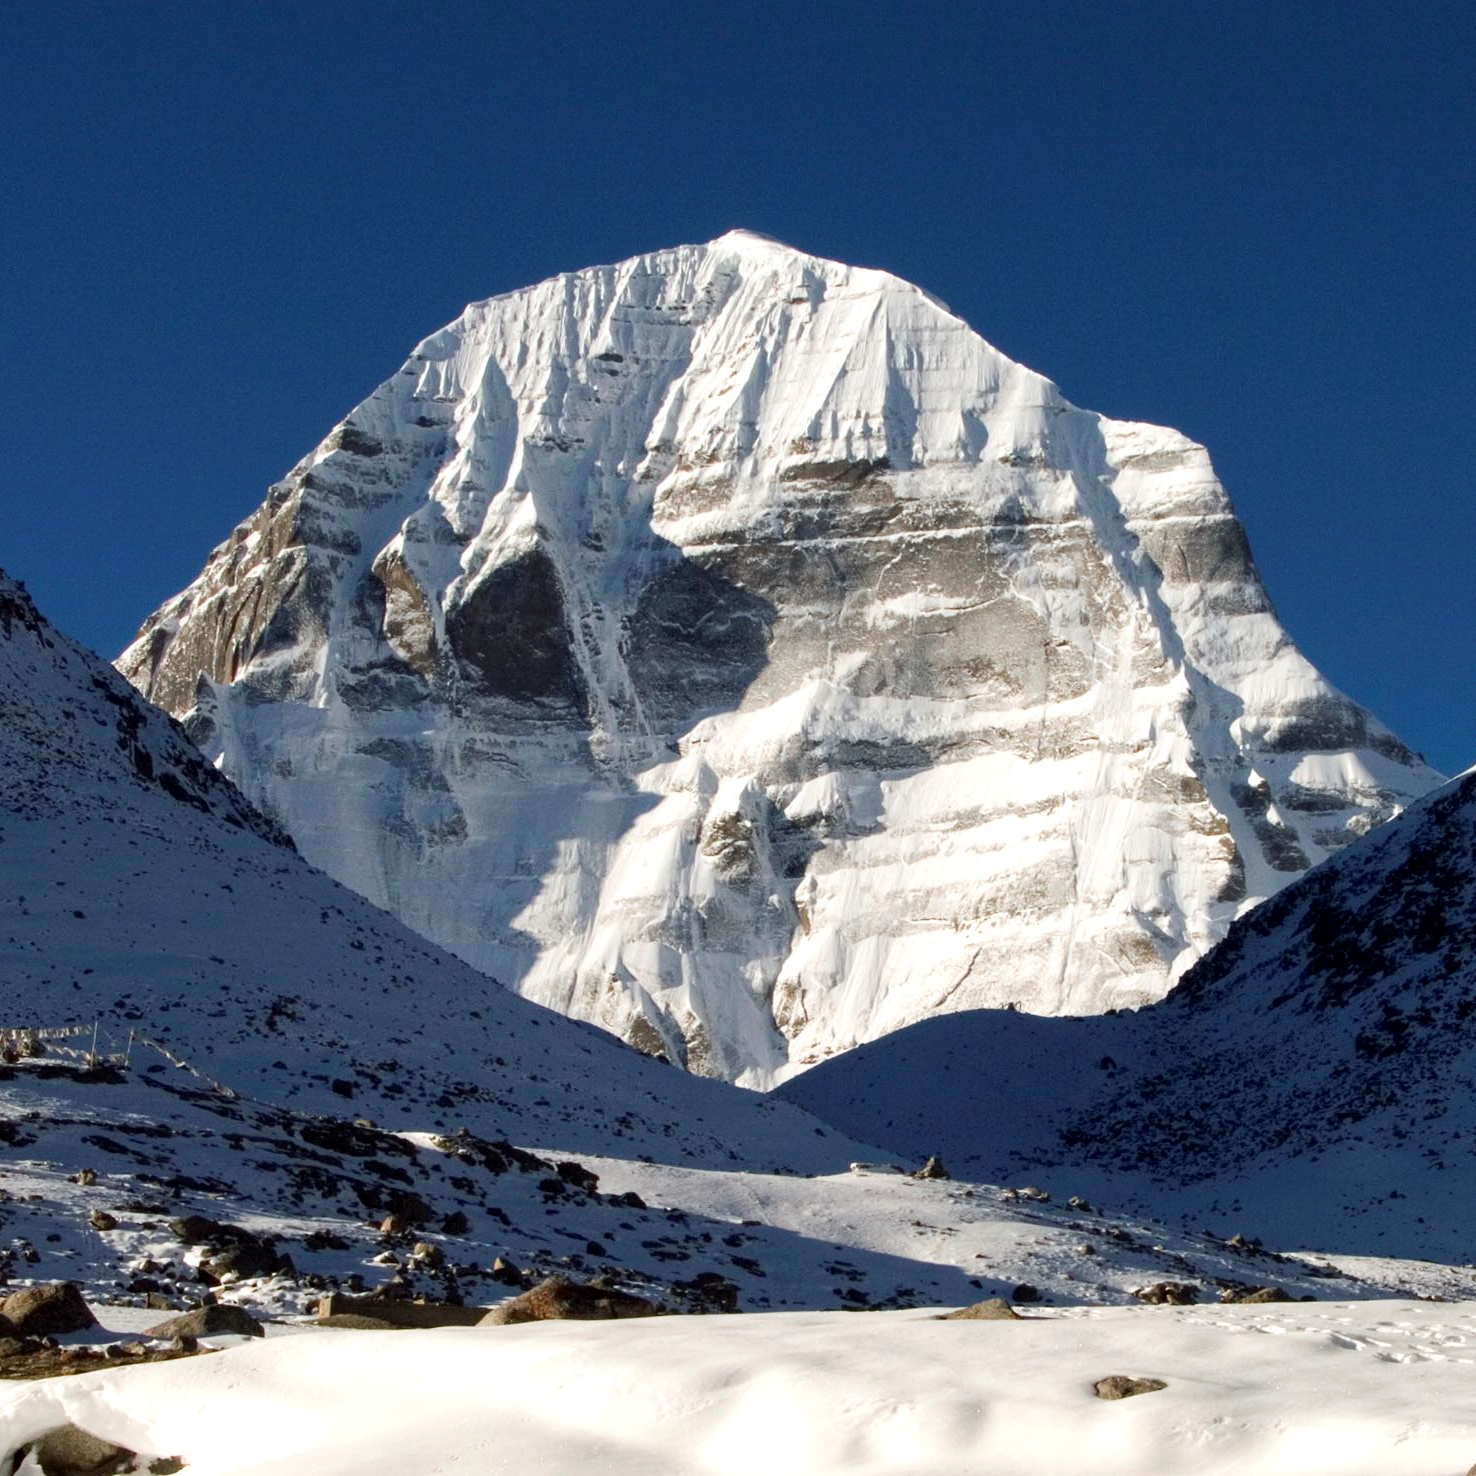 MOUNTKAILASH